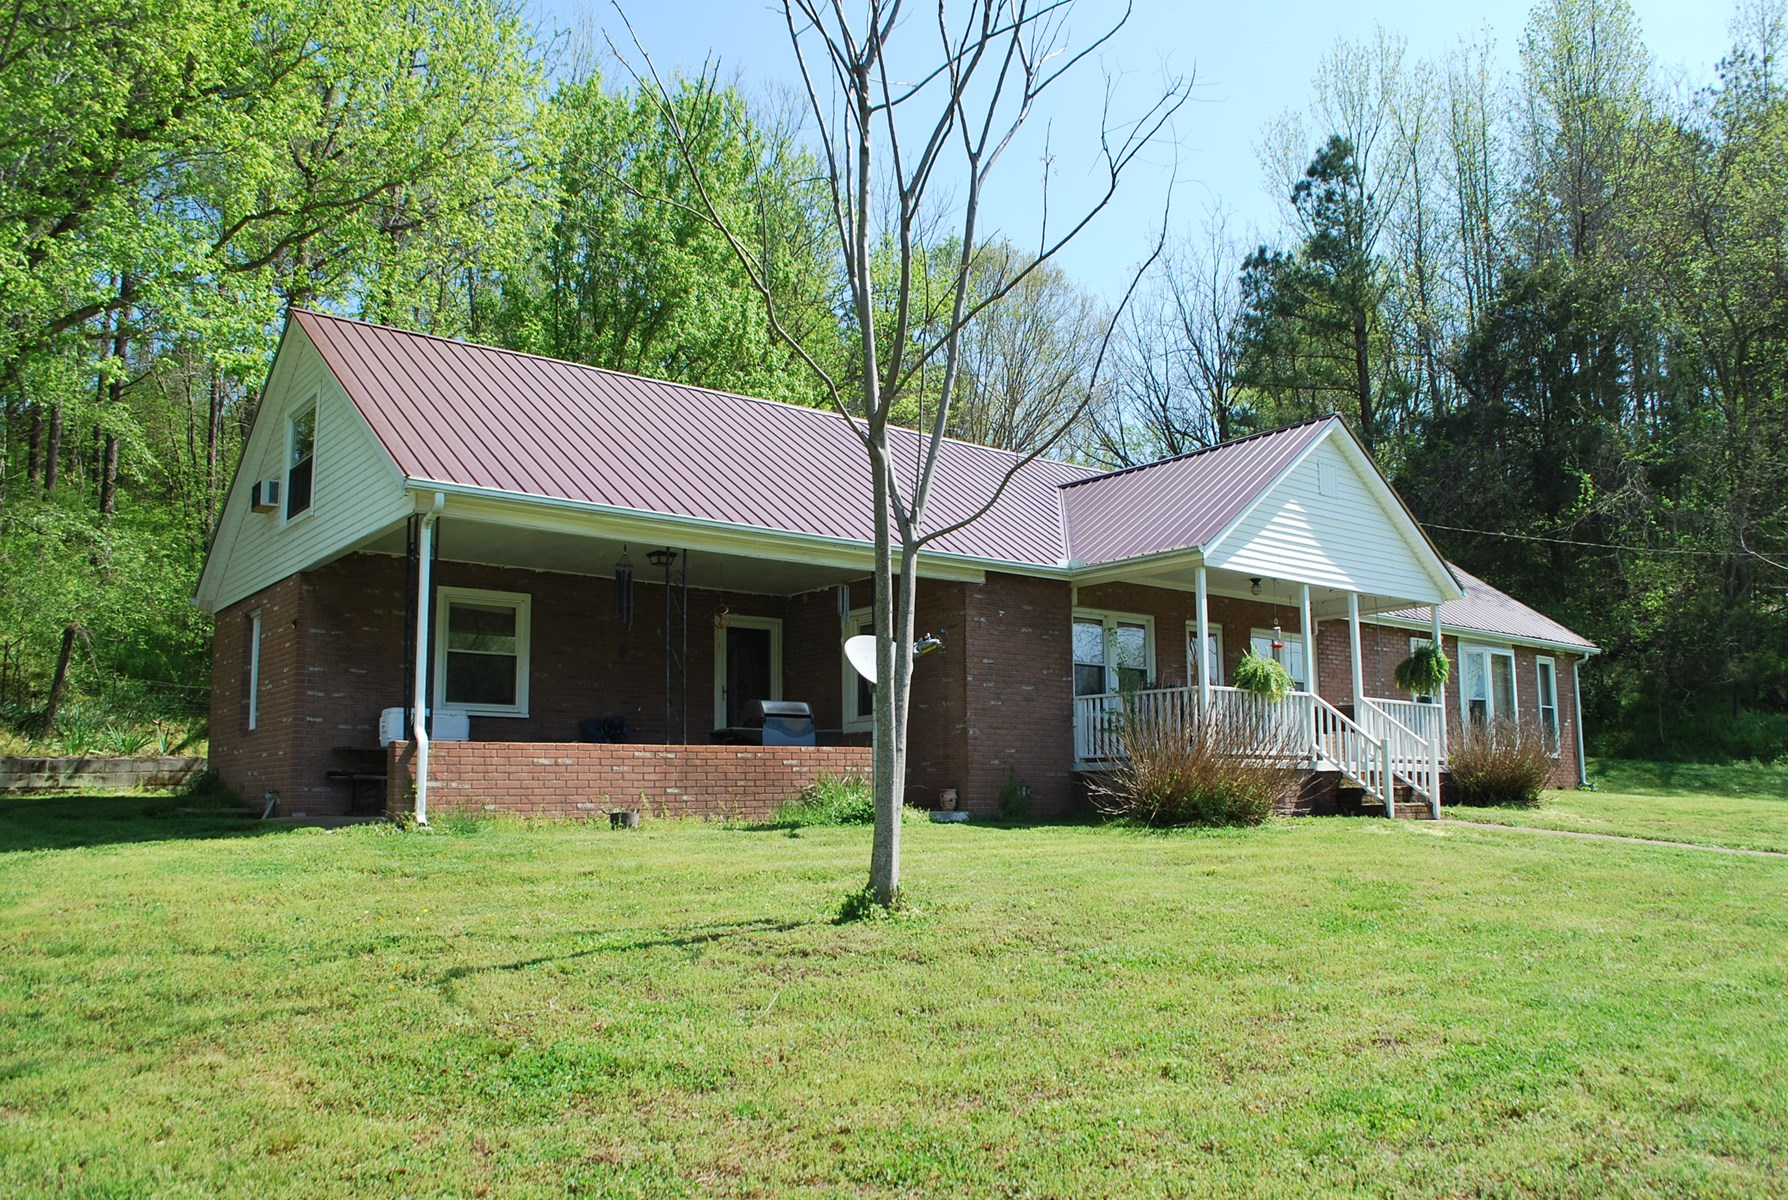 6+ ACRE MINI FARM w/ 2800 SQ FT HOME IN MIDDLE TENNESSEE!